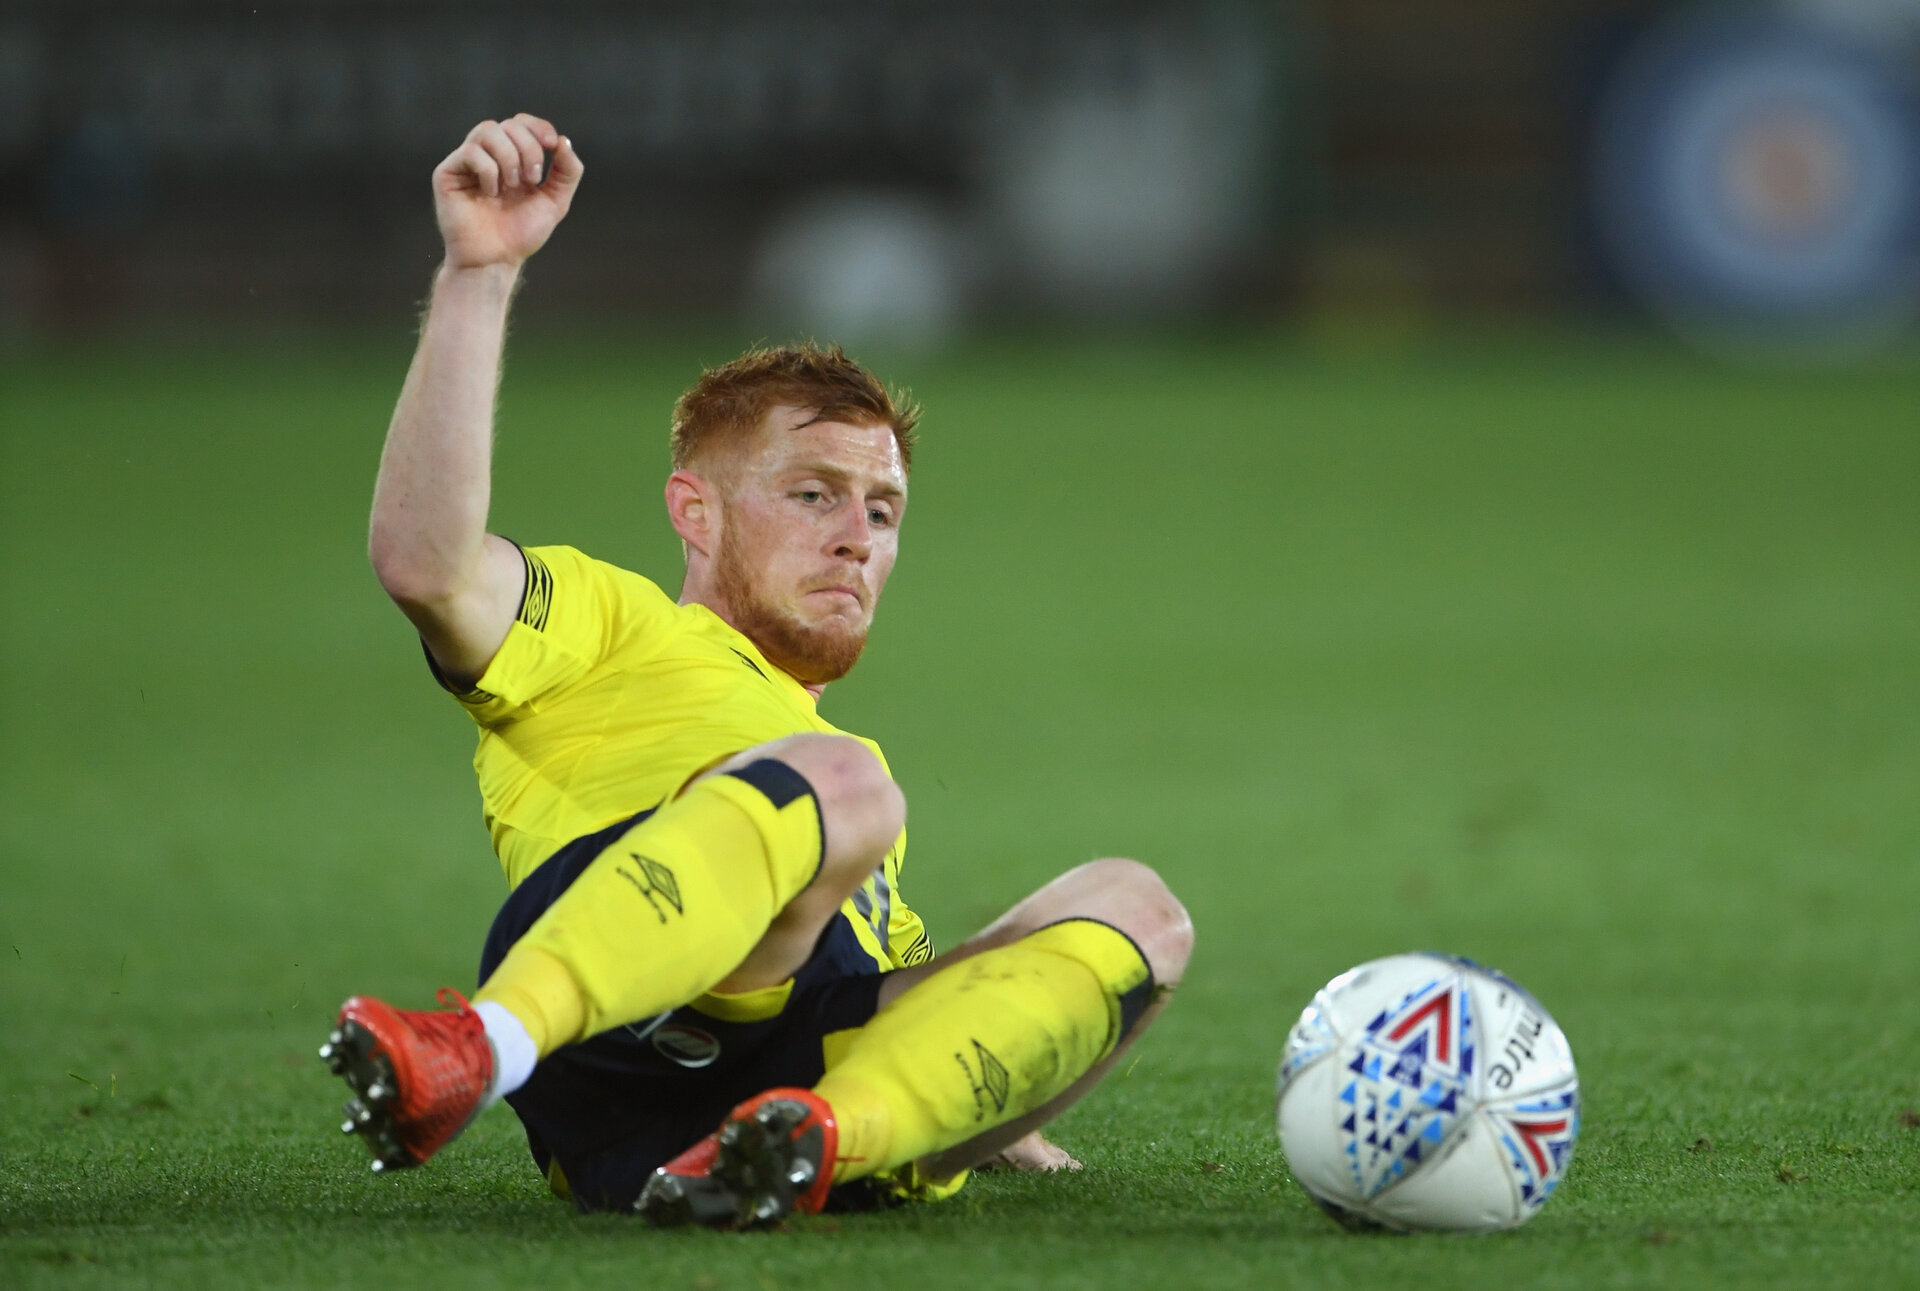 SWANSEA, WALES - OCTOBER 23:  Blackburn player Harrison Reed in action  during the Sky bet Championship EFL match between Swansea City v Blackburn Rovers at Liberty Stadium on October 23, 2018 in Swansea, Wales.  (Photo by Stu Forster/Getty Images)